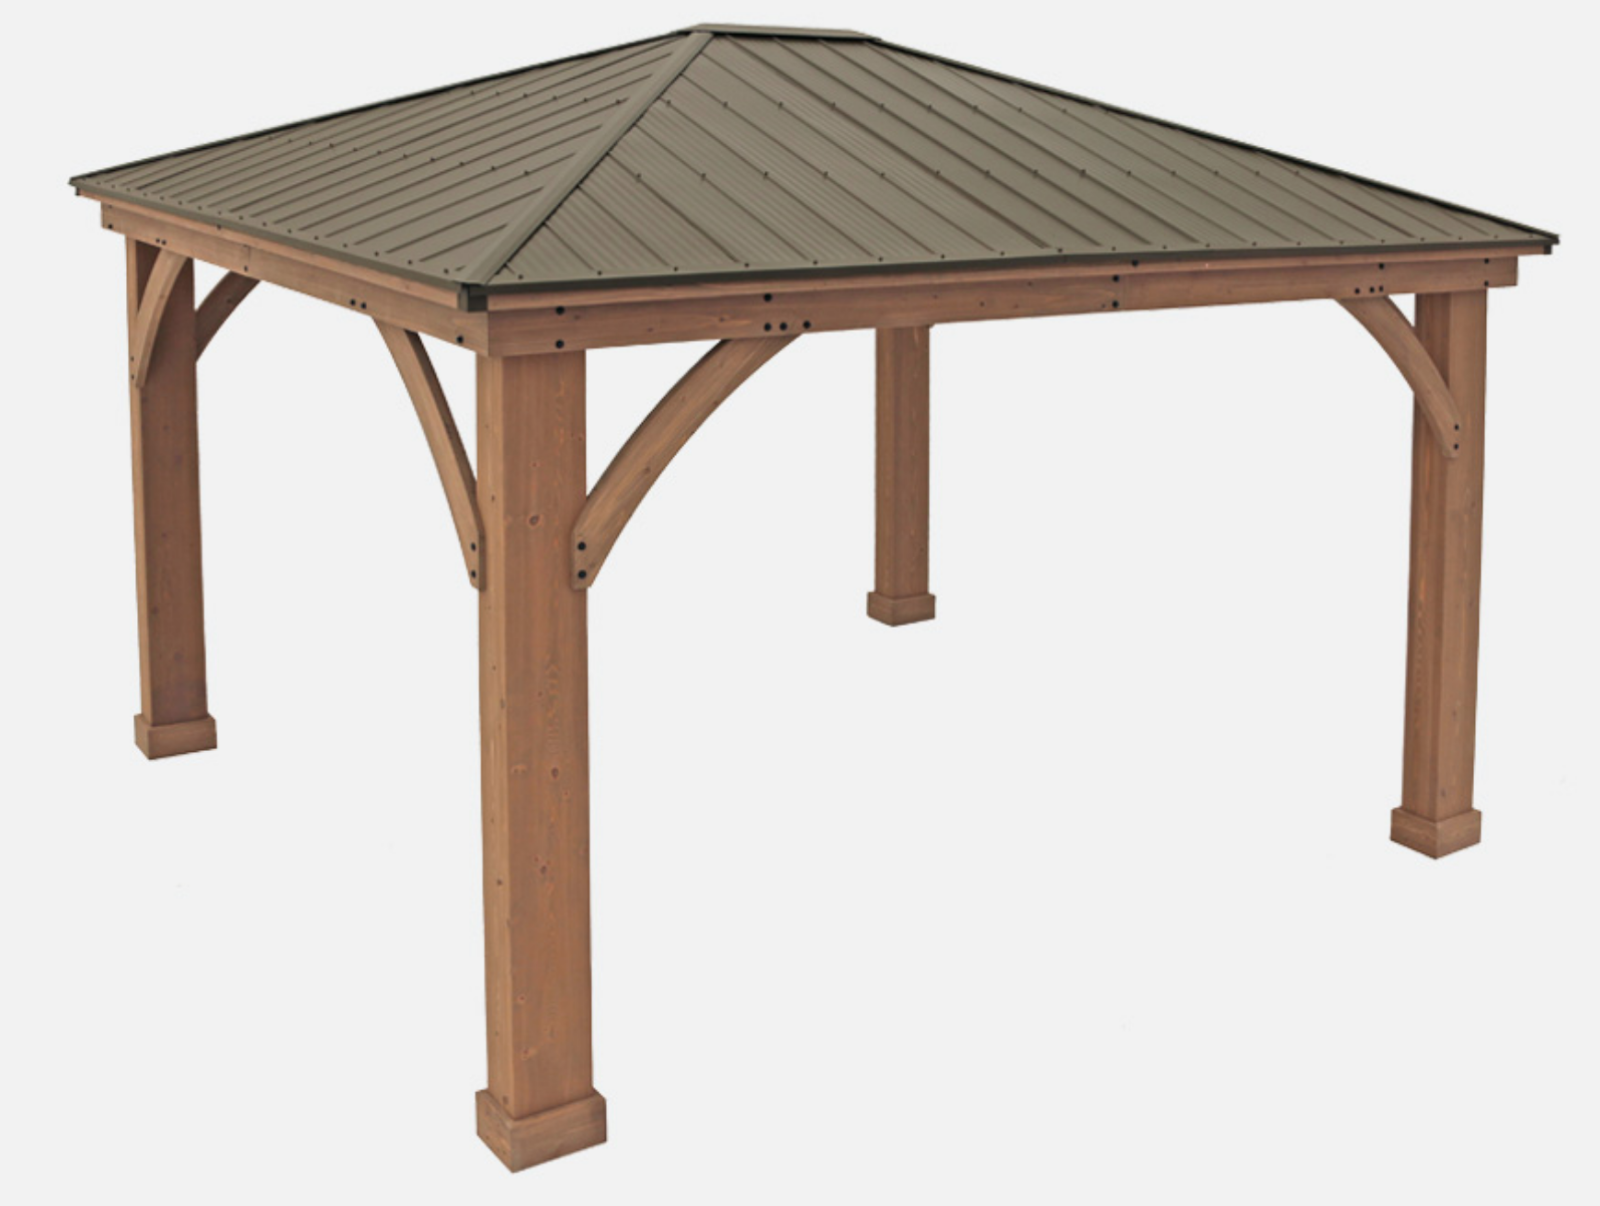 12 X 12 Wood Gazebo Heavy Duty Outdoor Aluminum Roof For Patio Sets Hot Tubs Spa Gazebos Aluminum Roof Gazebo Backyard Dining